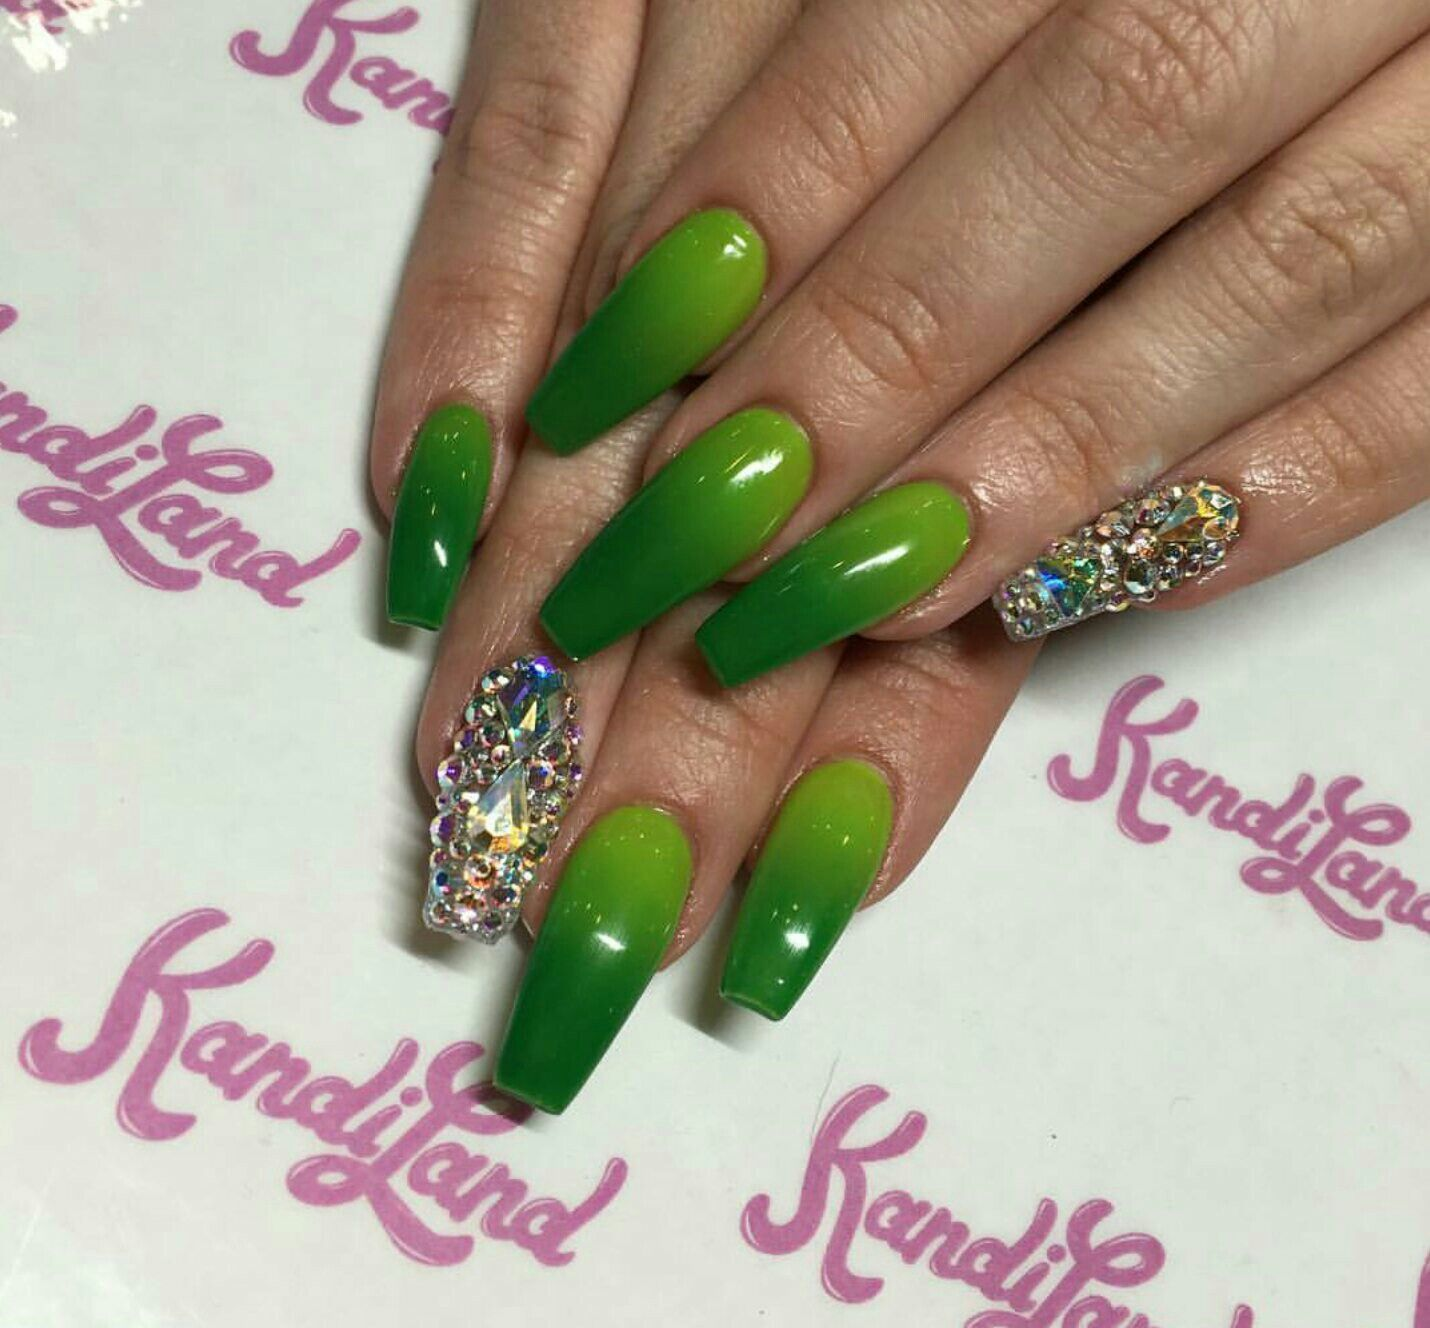 Green ombed coffin nails with jems | Nails | Pinterest | Unas acrilicas